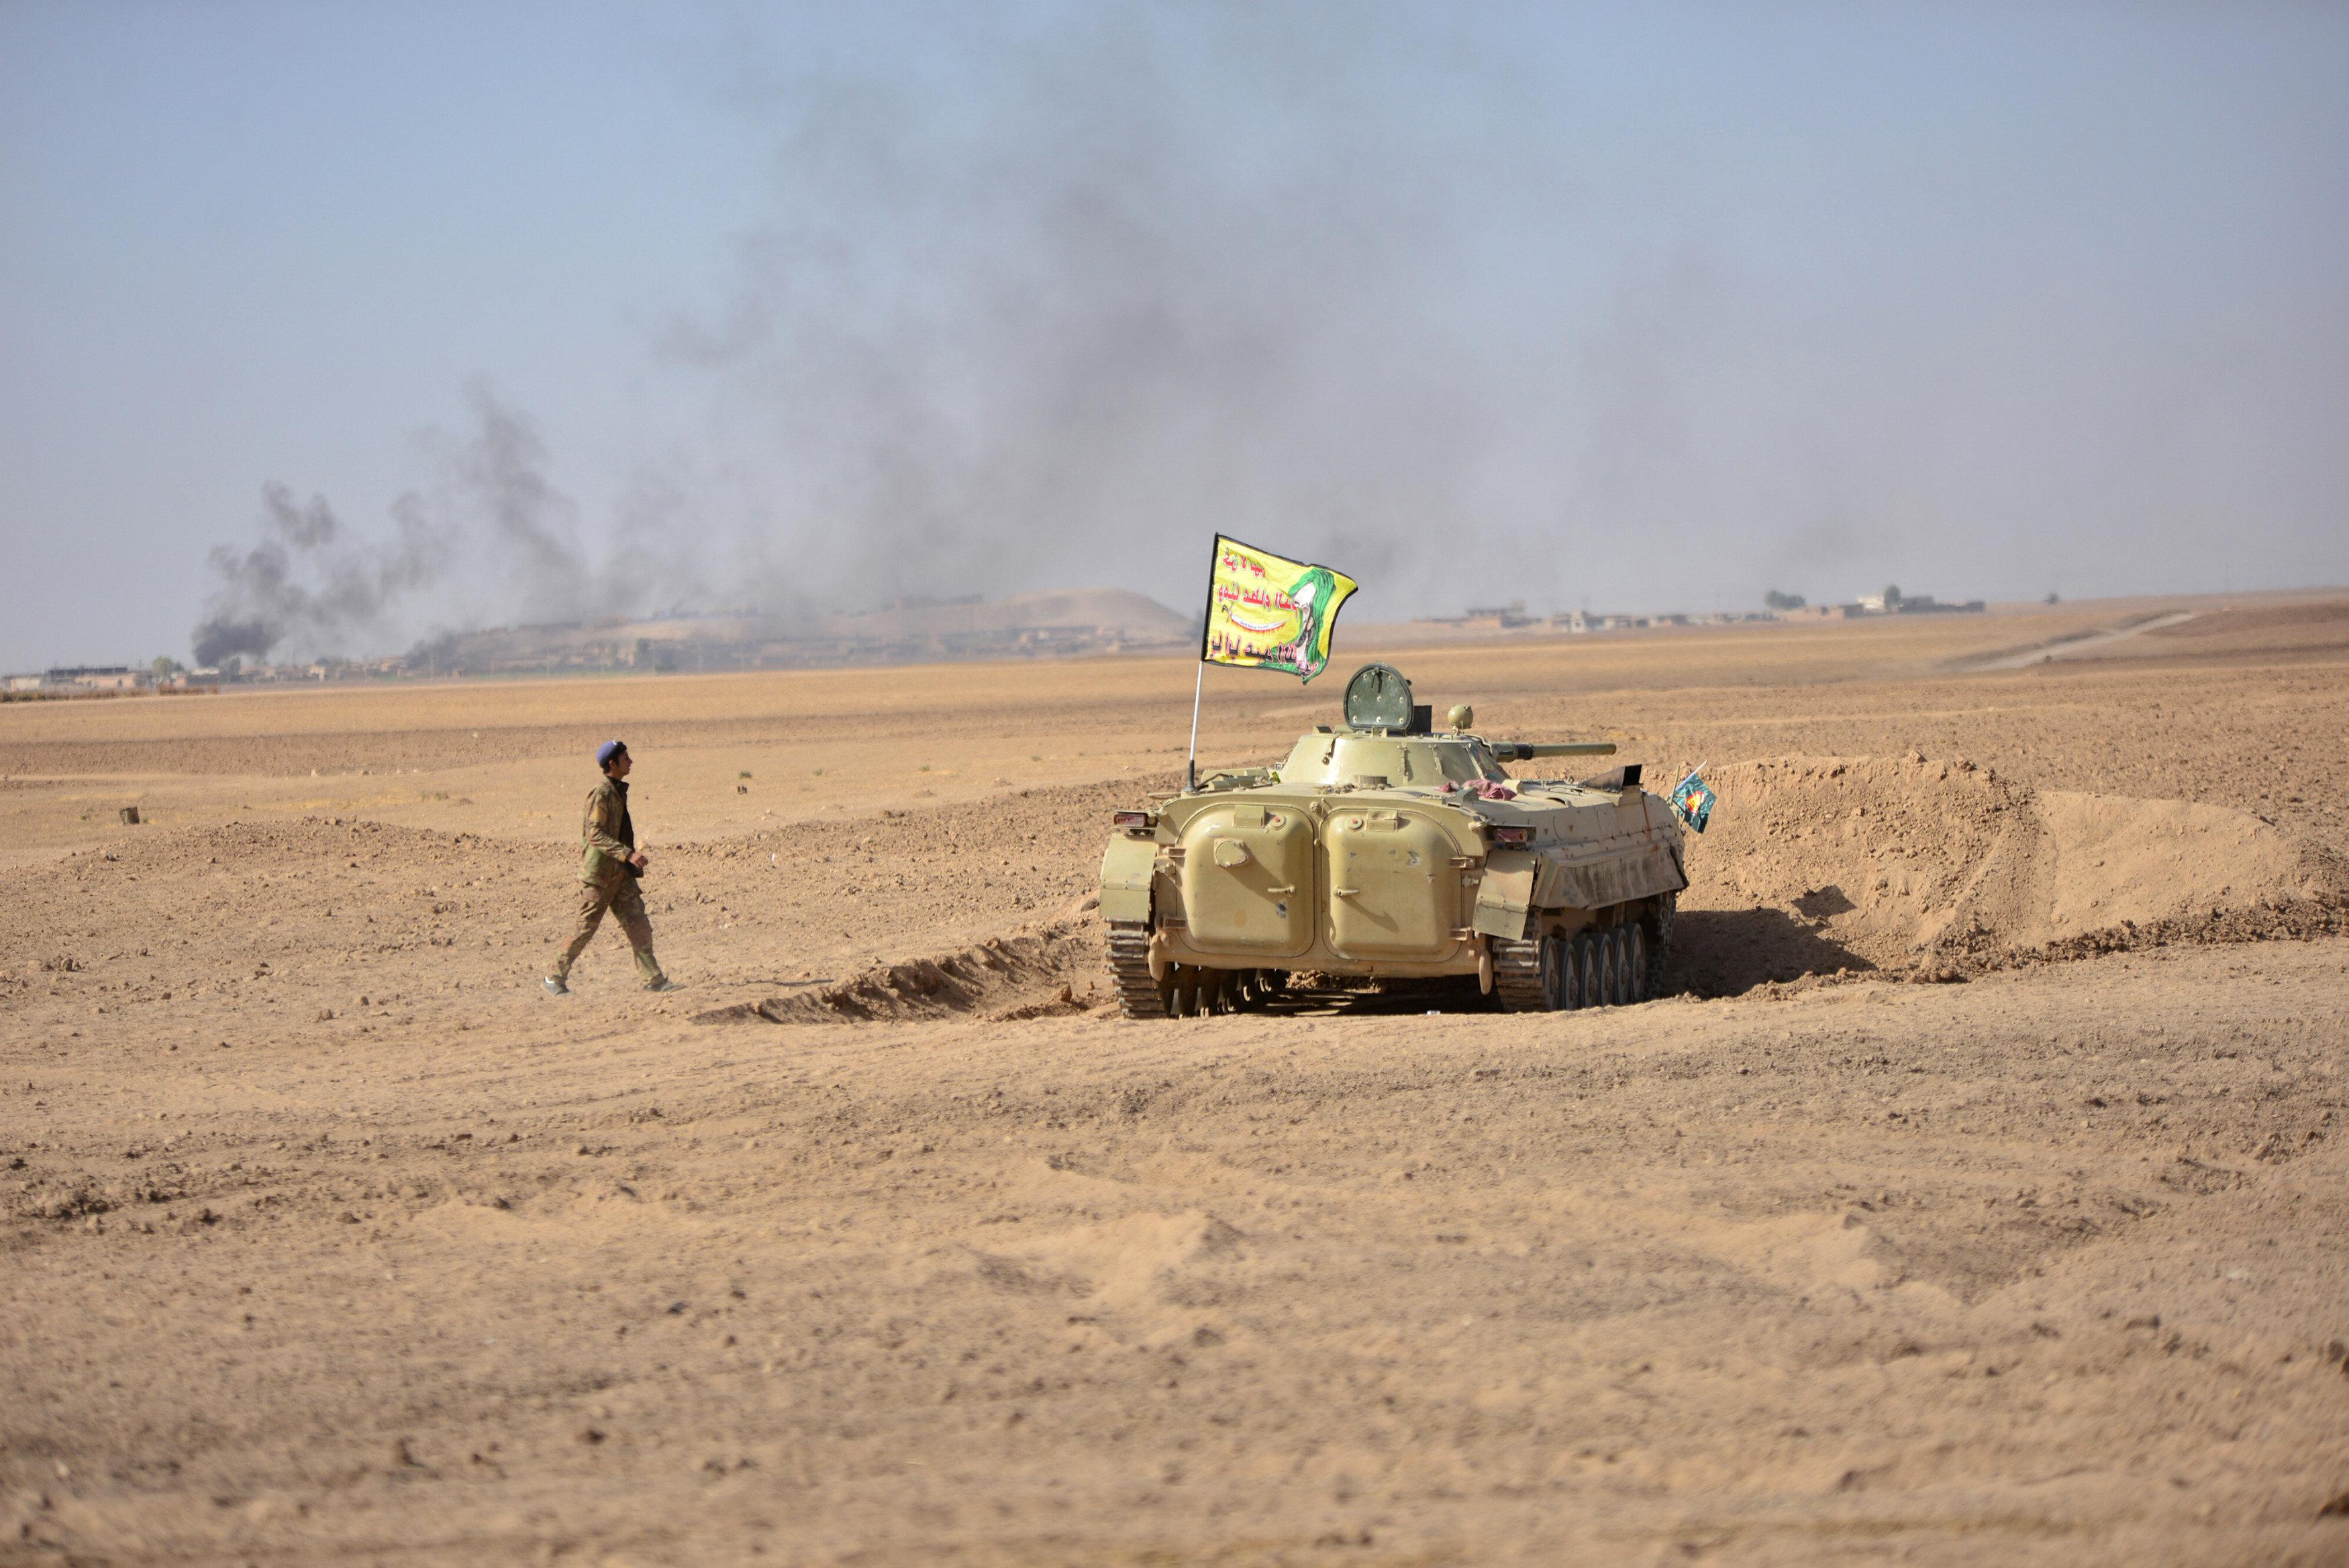 Popular Mobilization Forces (PMF) take part in an operation against Islamic State militants on the outskirts of the town of Hammam Al-Alil, south of Mosul, Iraq October 31, 2016. REUTERS/Stringer EDITORIAL USE ONLY. NO RESALES. NO ARCHIVE.